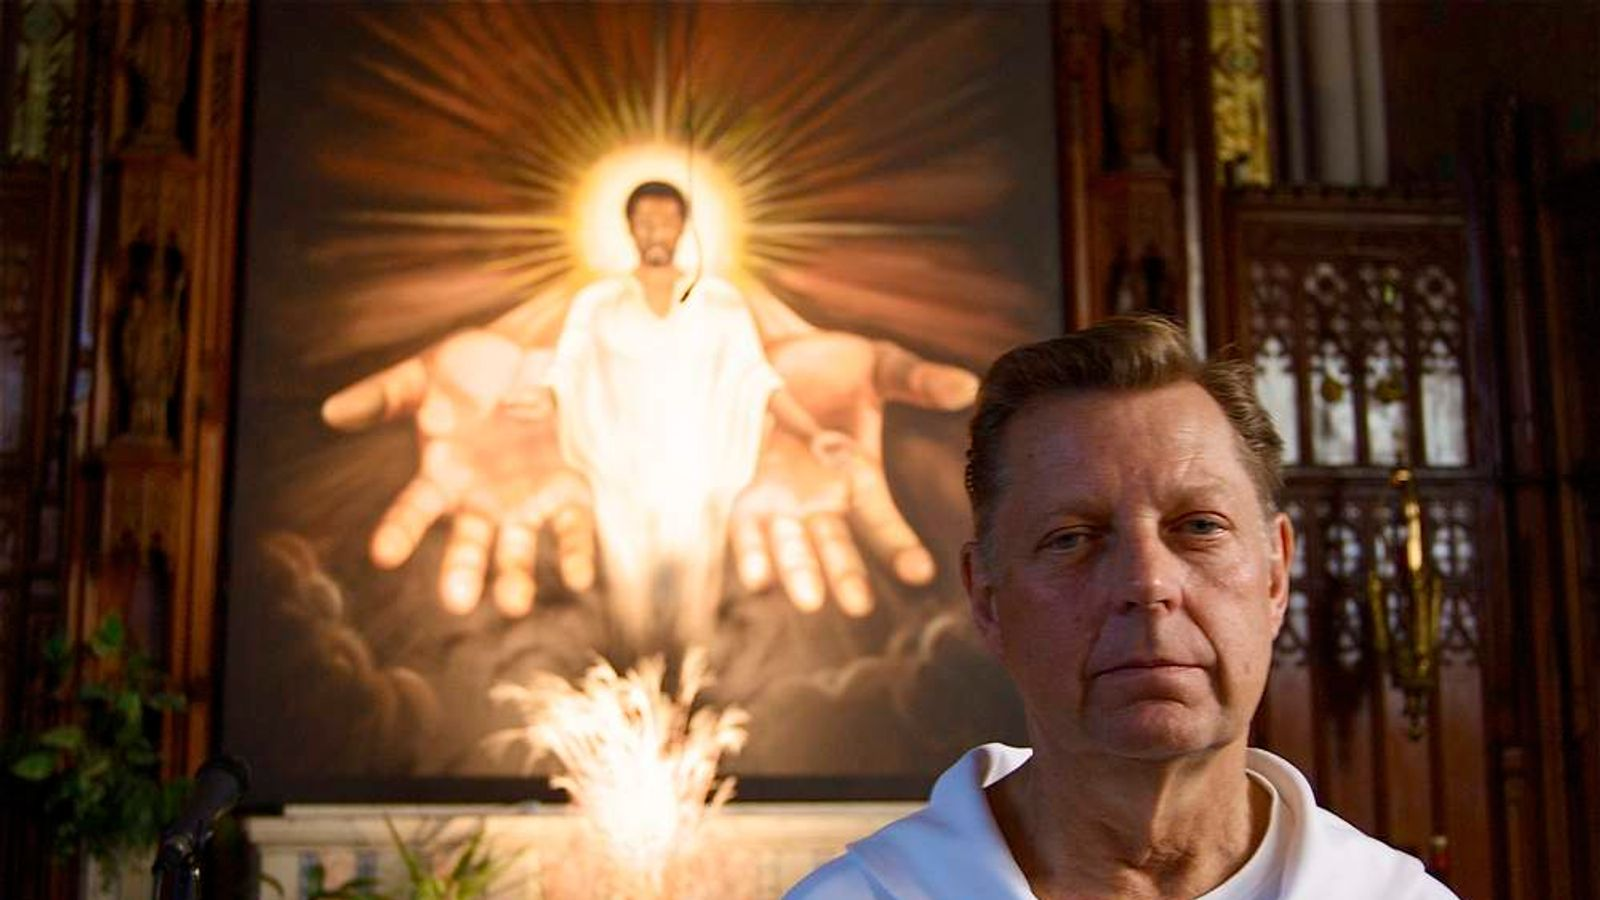 Father Michael Pfleger has campaigned against assault weapons.